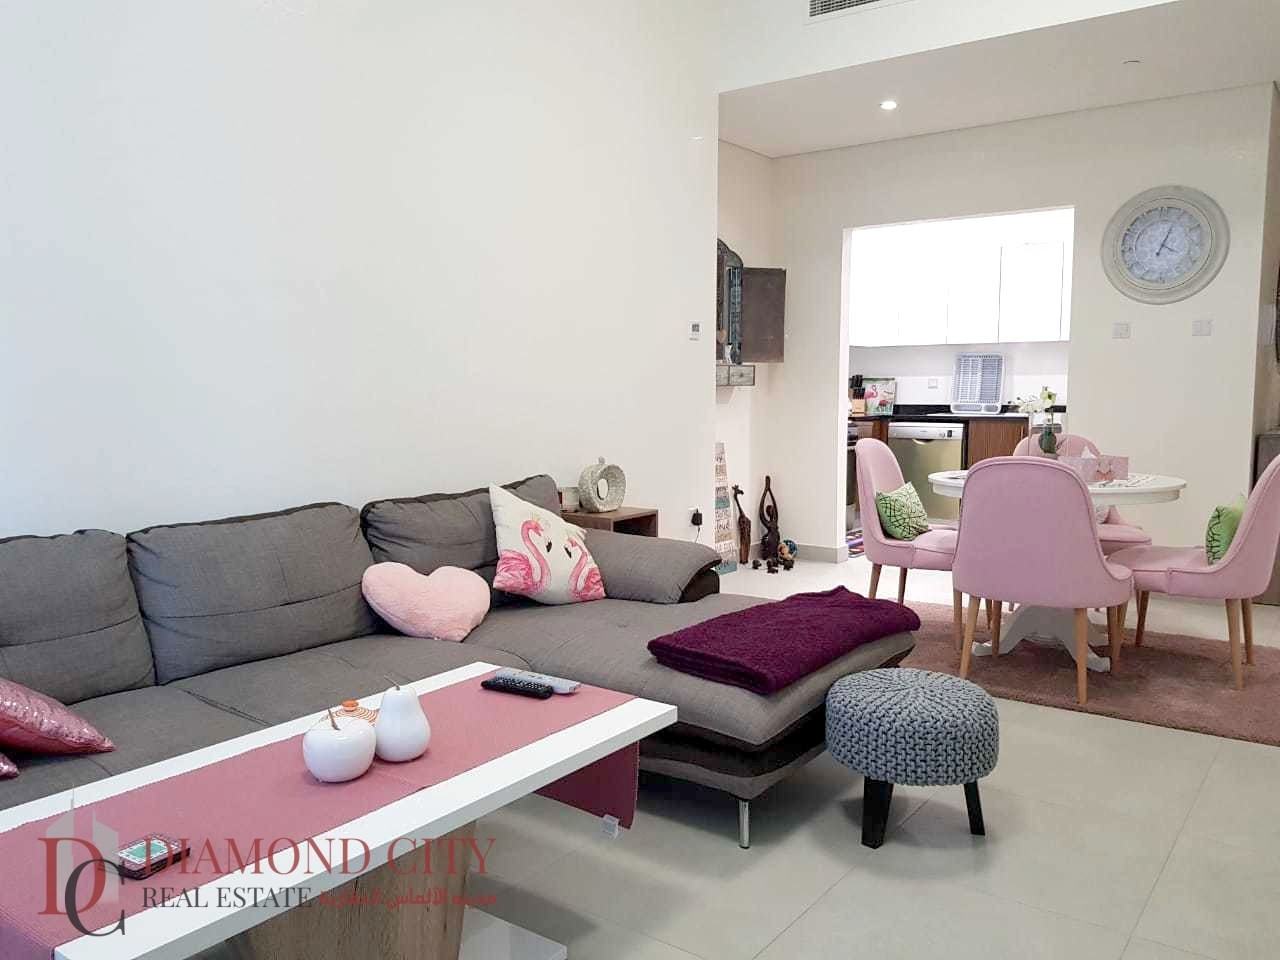 Beautifully furnished |Opposite beach |Brand new